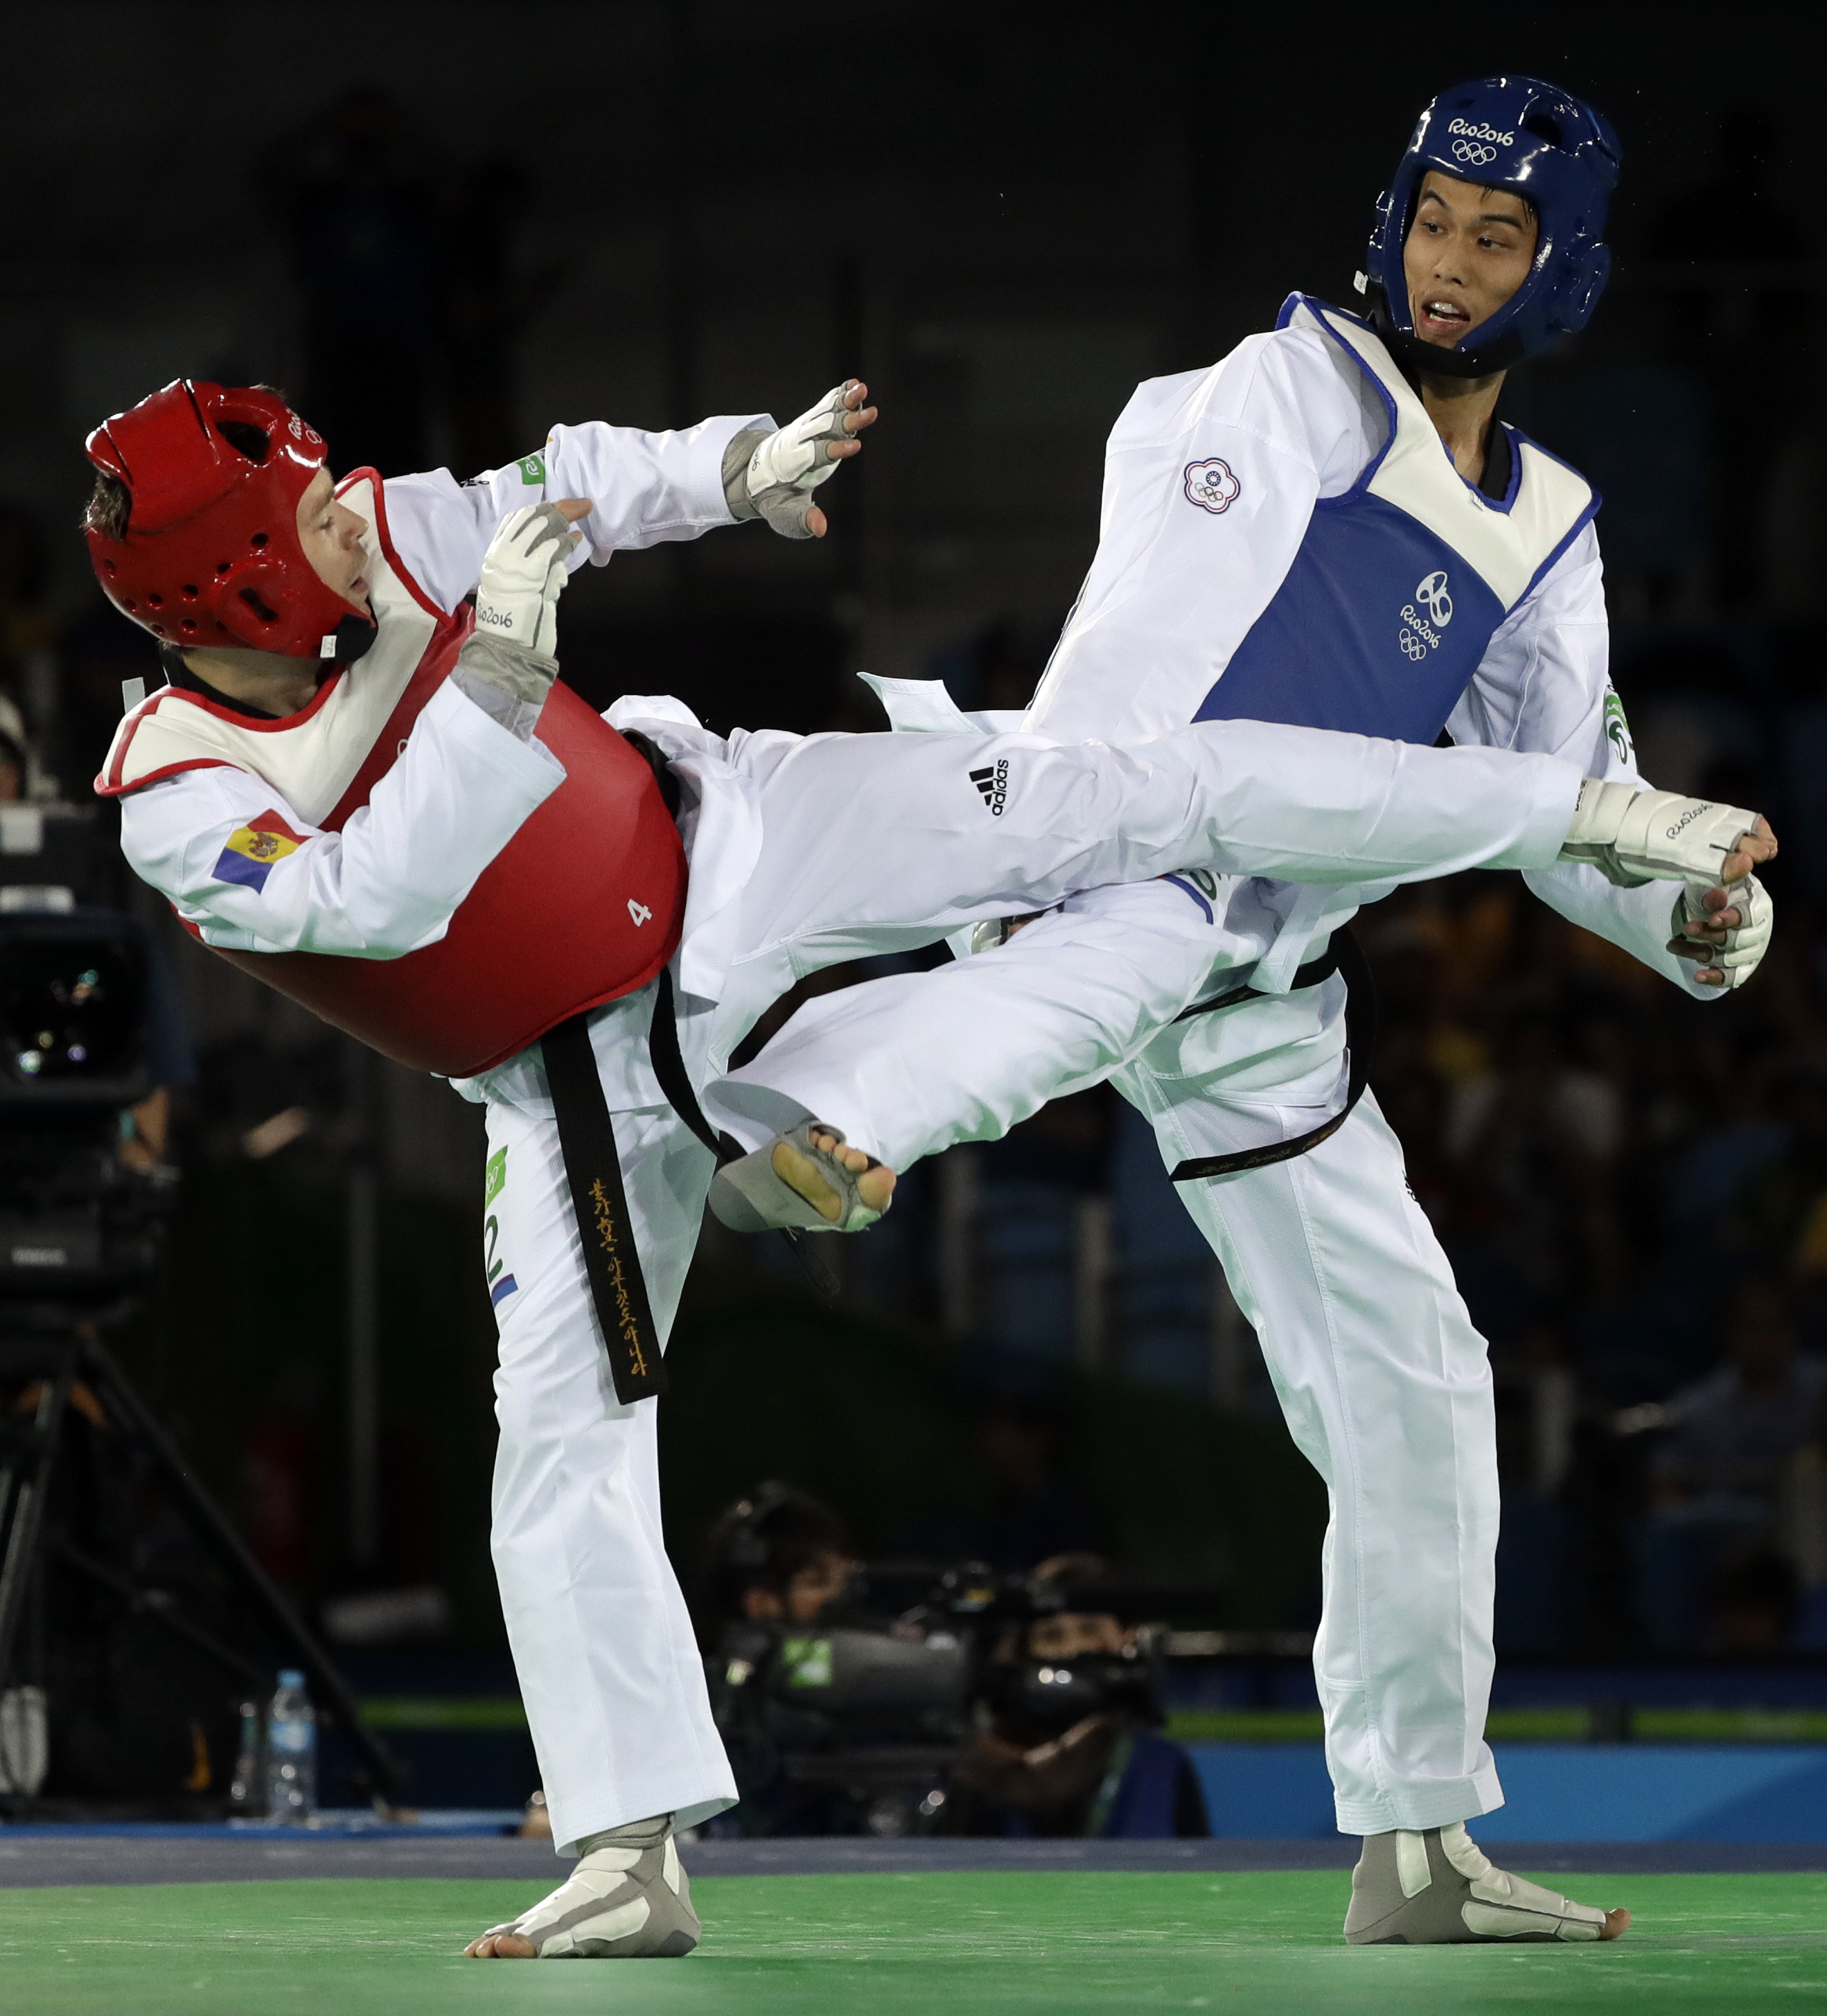 Liu Wei-Ting of Taipei, right, and Aaron Cook of Moldova compete in a men's Taekwondo 80-kg competition at the 2016 Summer Olympics in Rio de Janeiro, Brazil, Friday, Aug. 19, 2016. (AP Photo/Andrew Medichini)